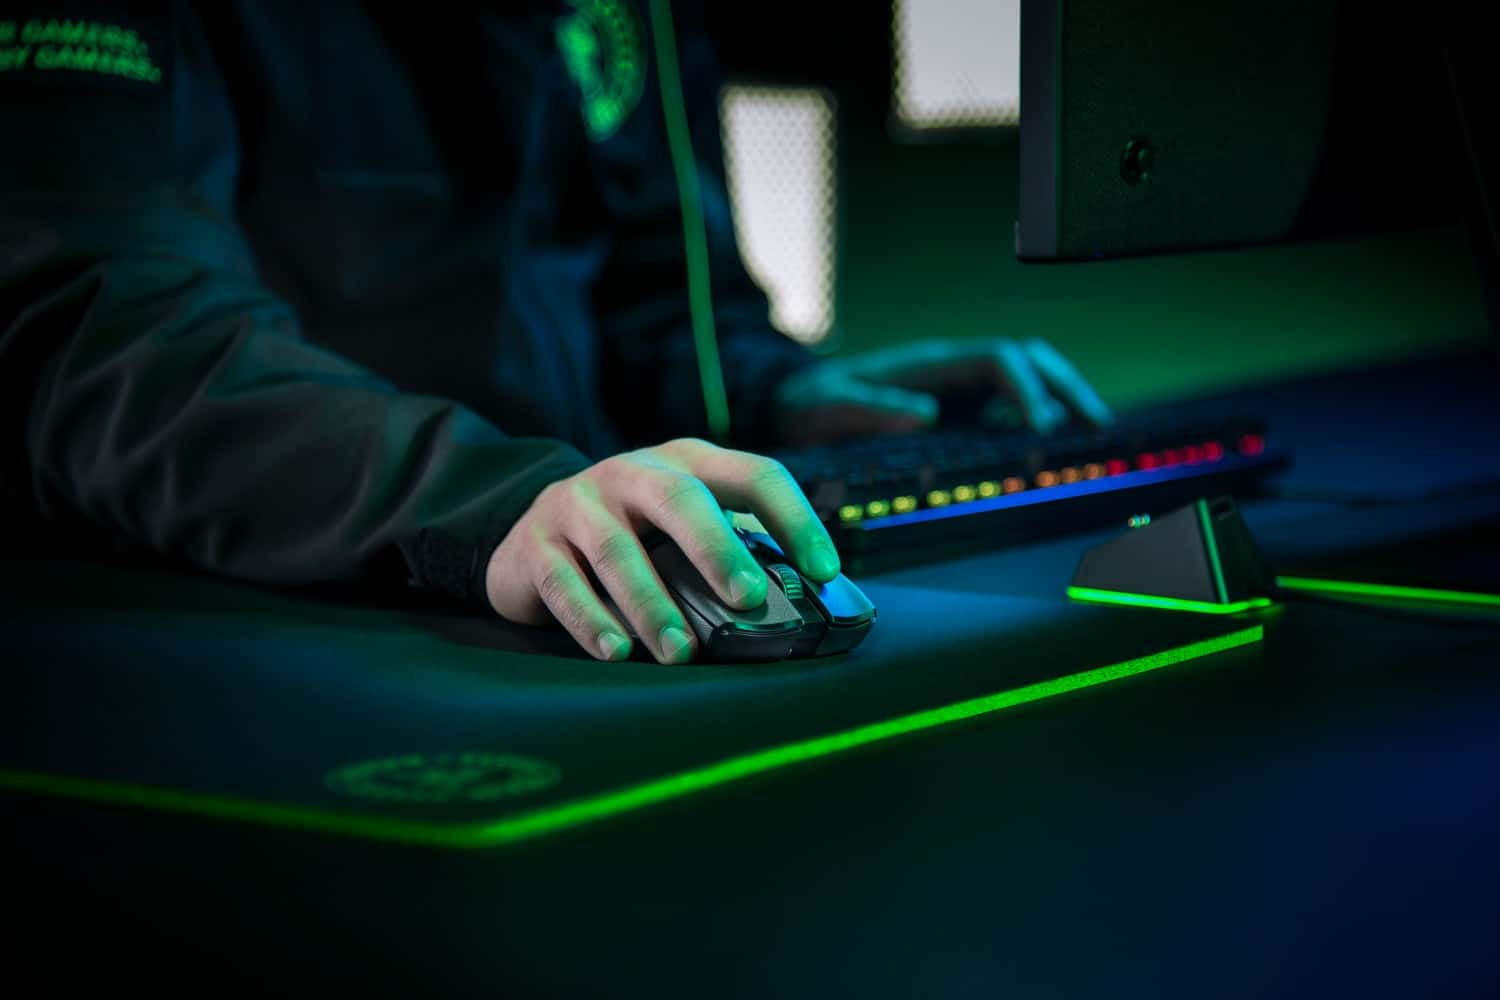 Razer Announces New Wireless Mouse for eSports: Razer Viper Ultimate